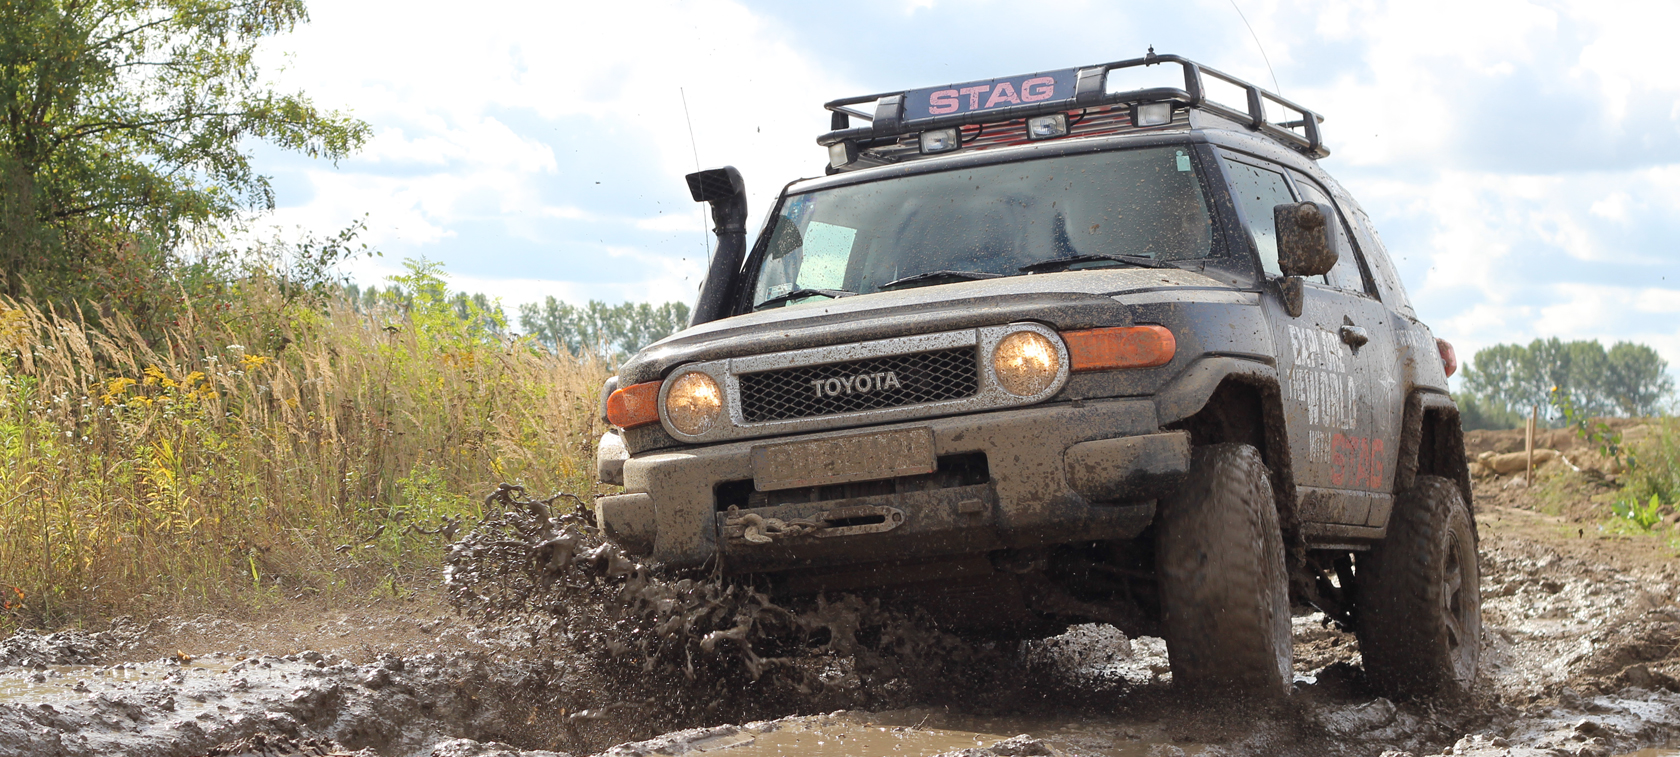 Toyota FJ Cruiser LPG by STAG - gas in the mud